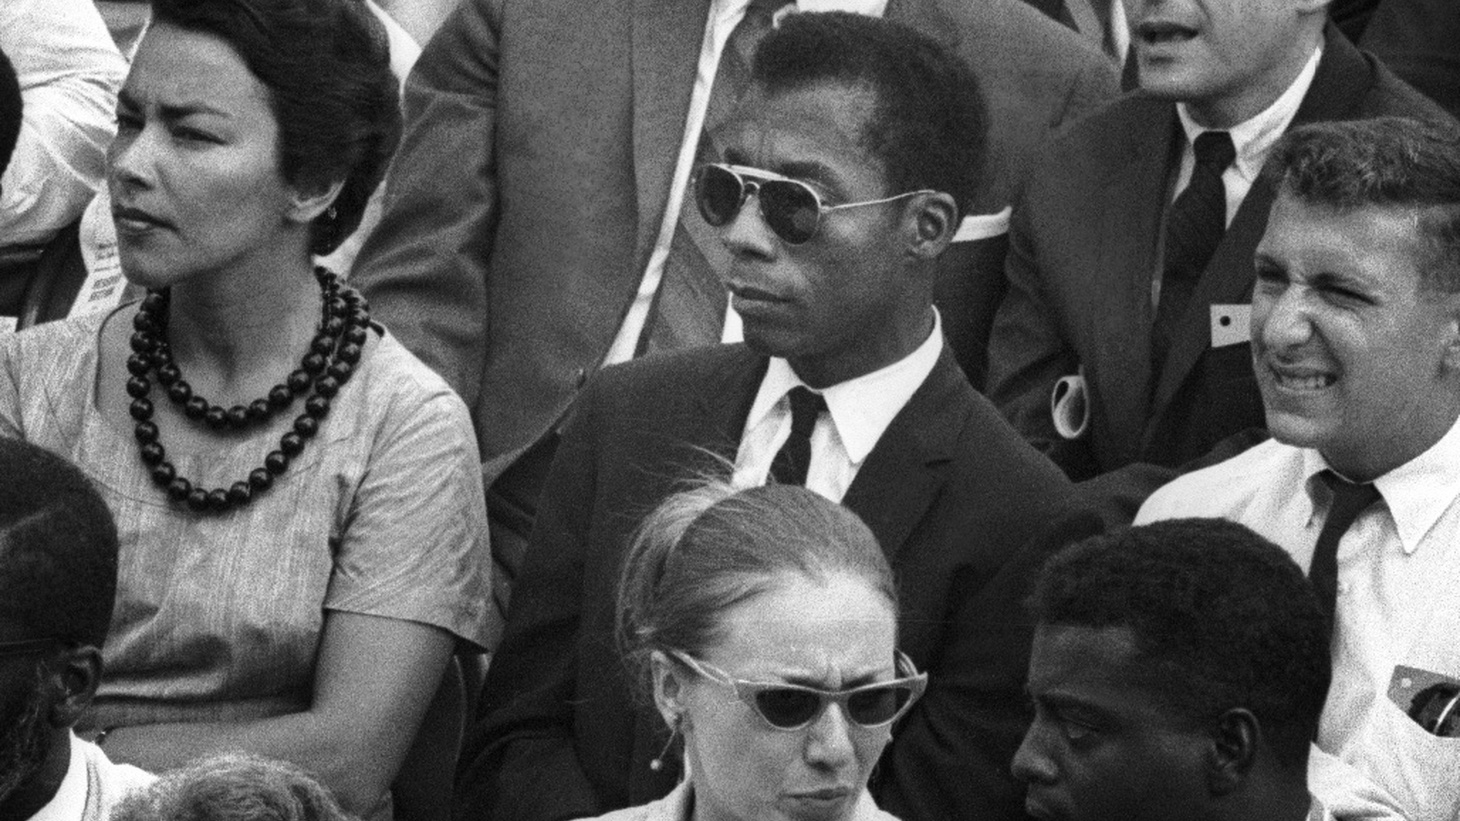 Director Raoul Peck's film about the essayist and activist James Baldwin was a decade in the making. Now, I Am Not Your Negrois Oscar-nominated for best documentary. Peck tells us how he got access to Baldwin's archives and why right now is the perfect time to learn about the late writer.